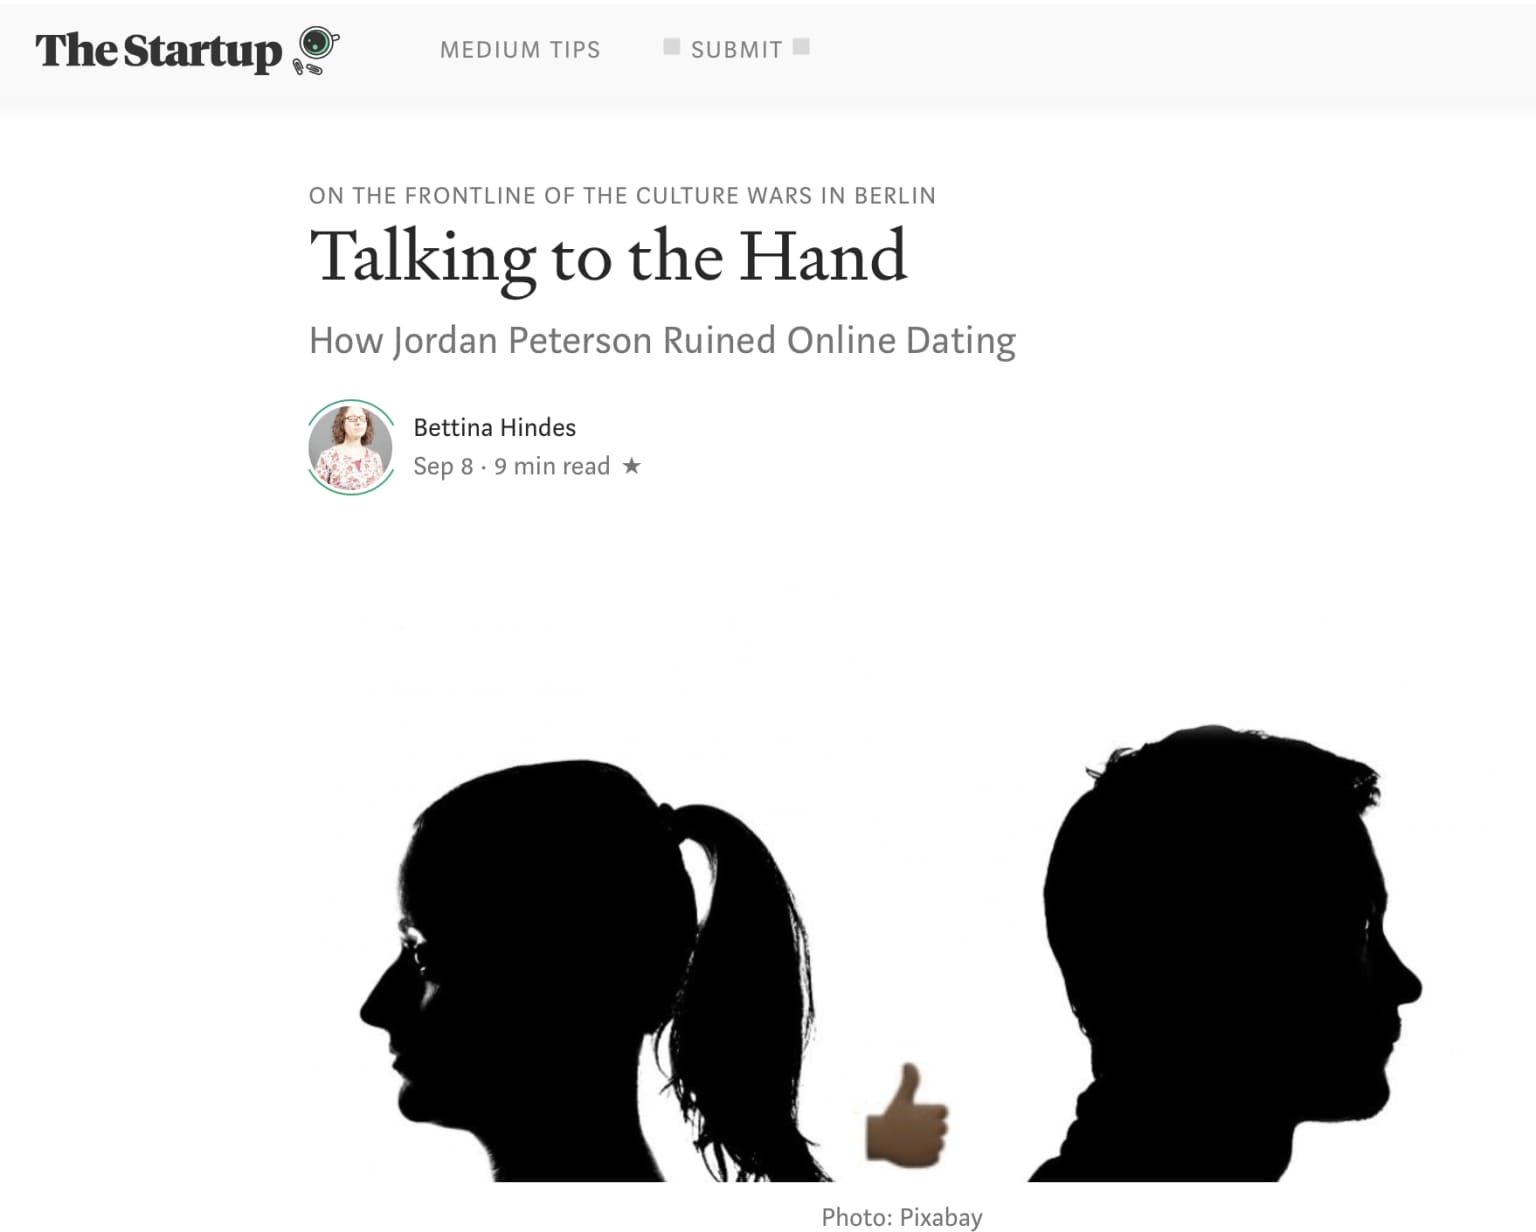 My article Talking to the Hand was featured in The Startup, a Medium.com Publication